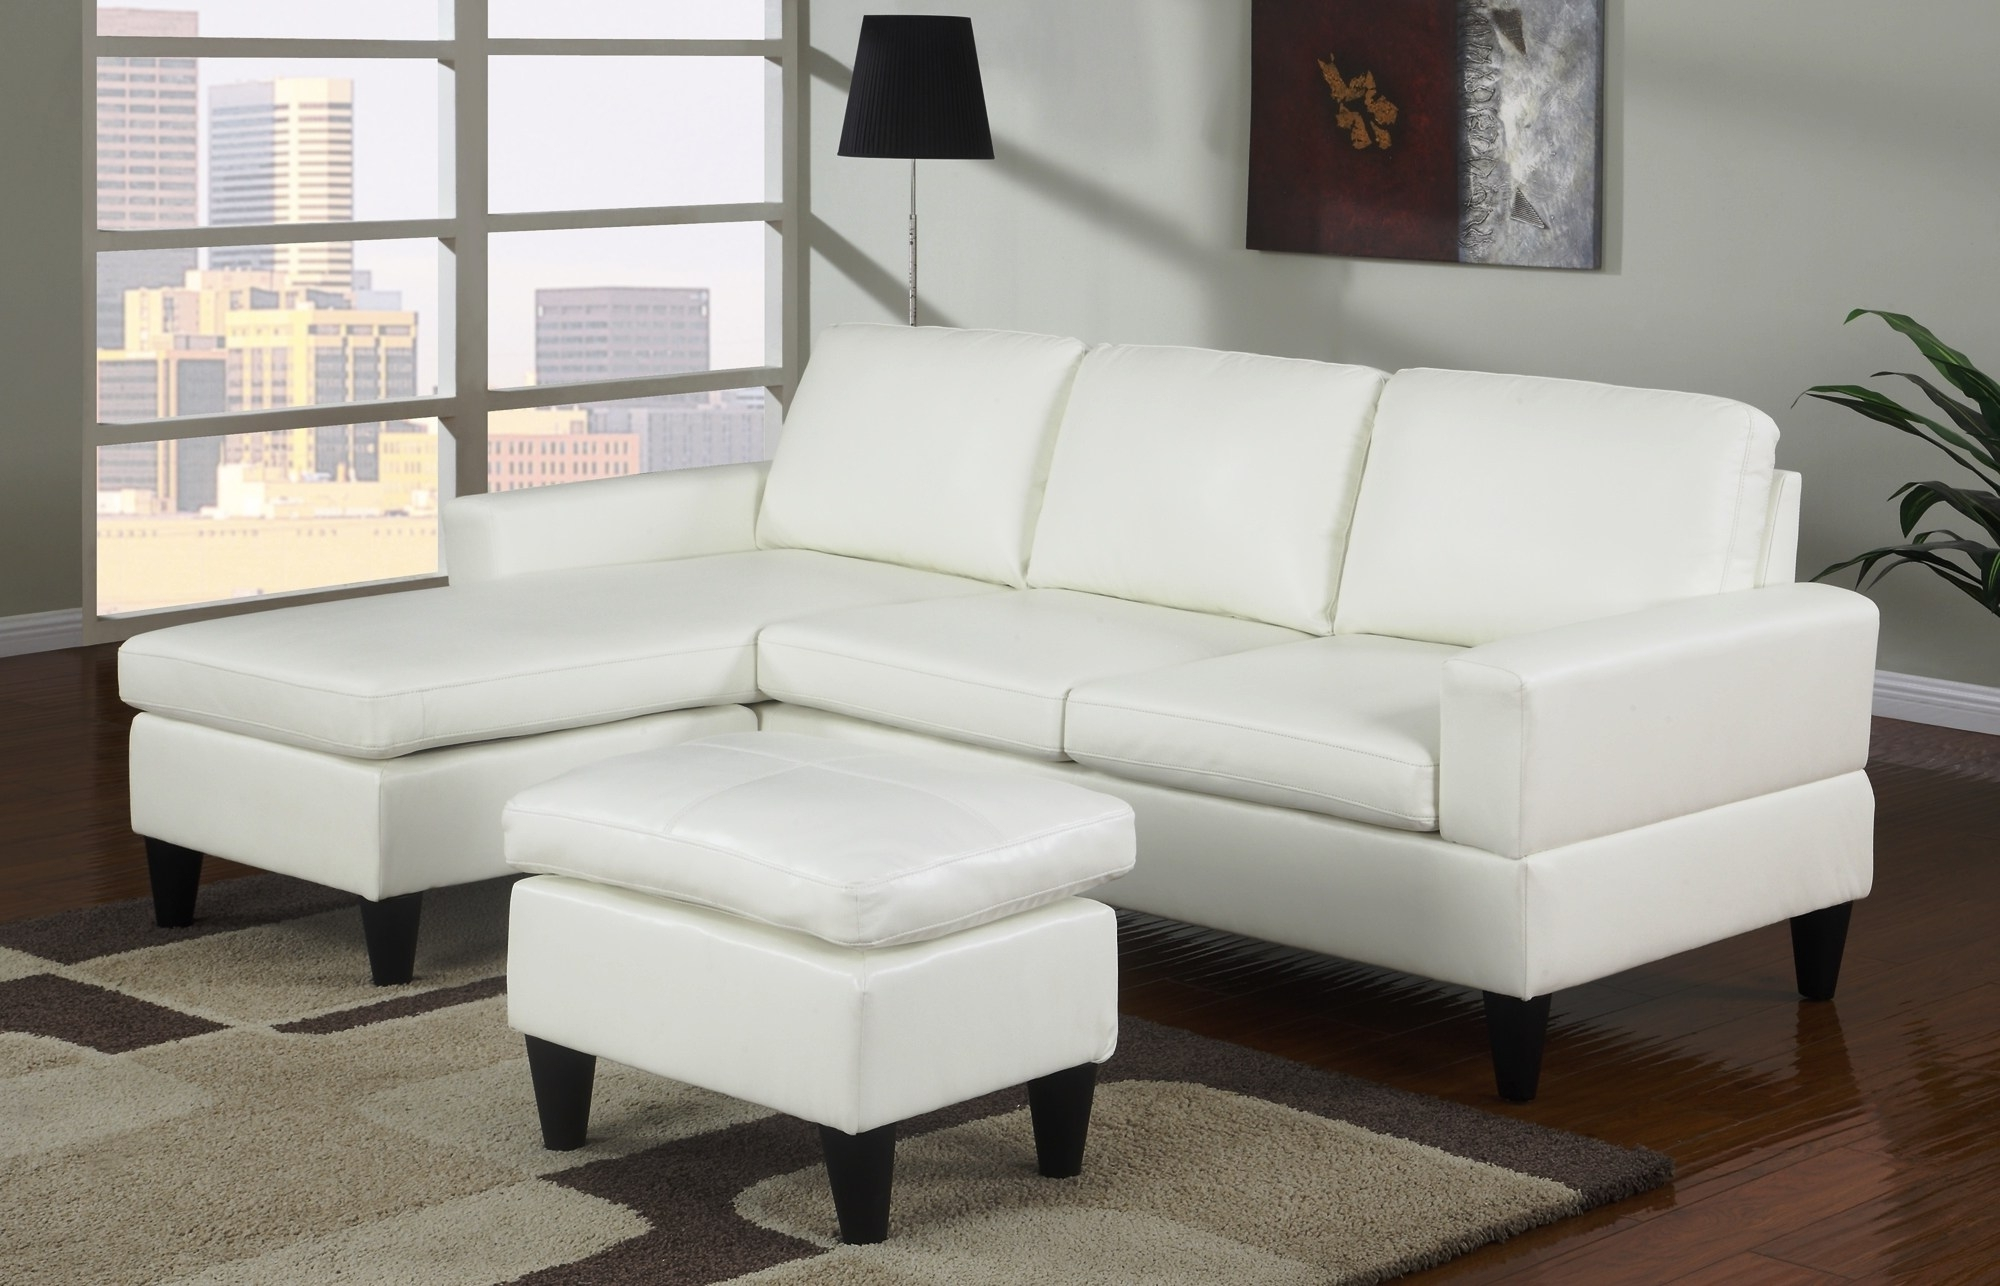 White Leather Corner Sofas For Popular Divani Casa Roslyn Modern White Sofa Leather Linx Set Madrid (View 15 of 20)